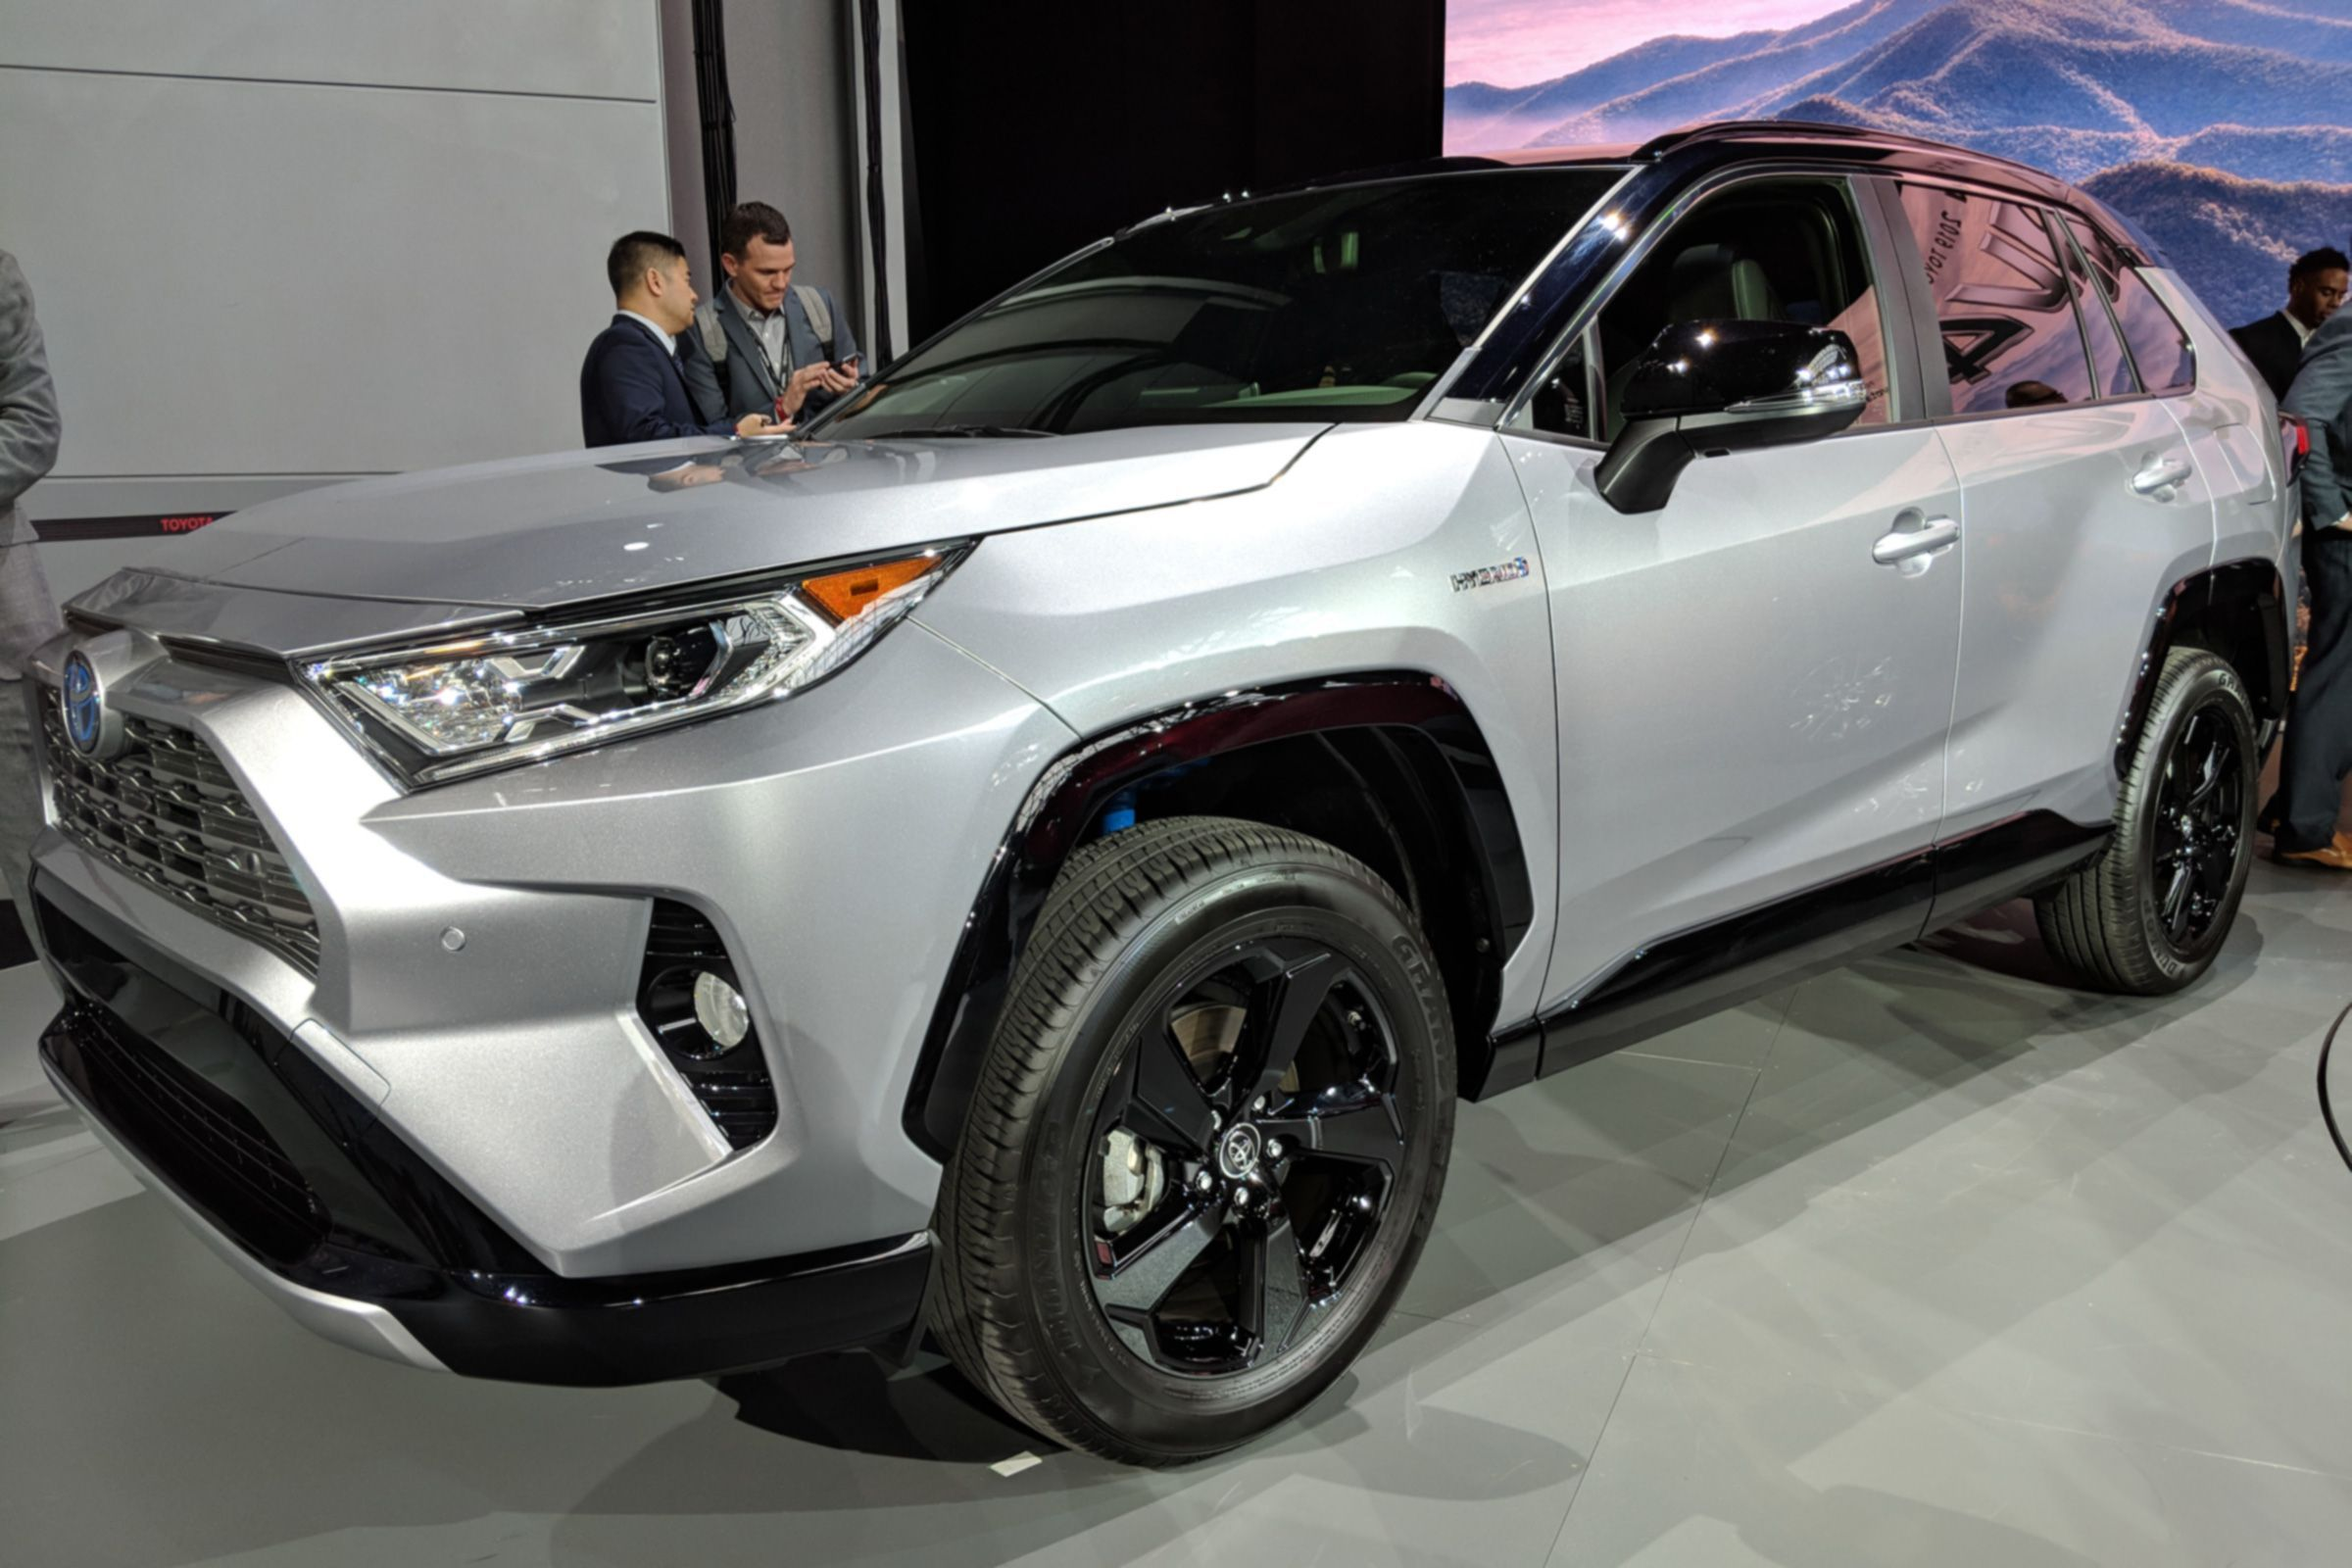 Expert Review Of The Toyota Rav4 2020 Uk Provides The Latest Look At Trim Level Features And Specs Performance Safety And Toyota Rav4 Suv Toyota Rav4 Toyota